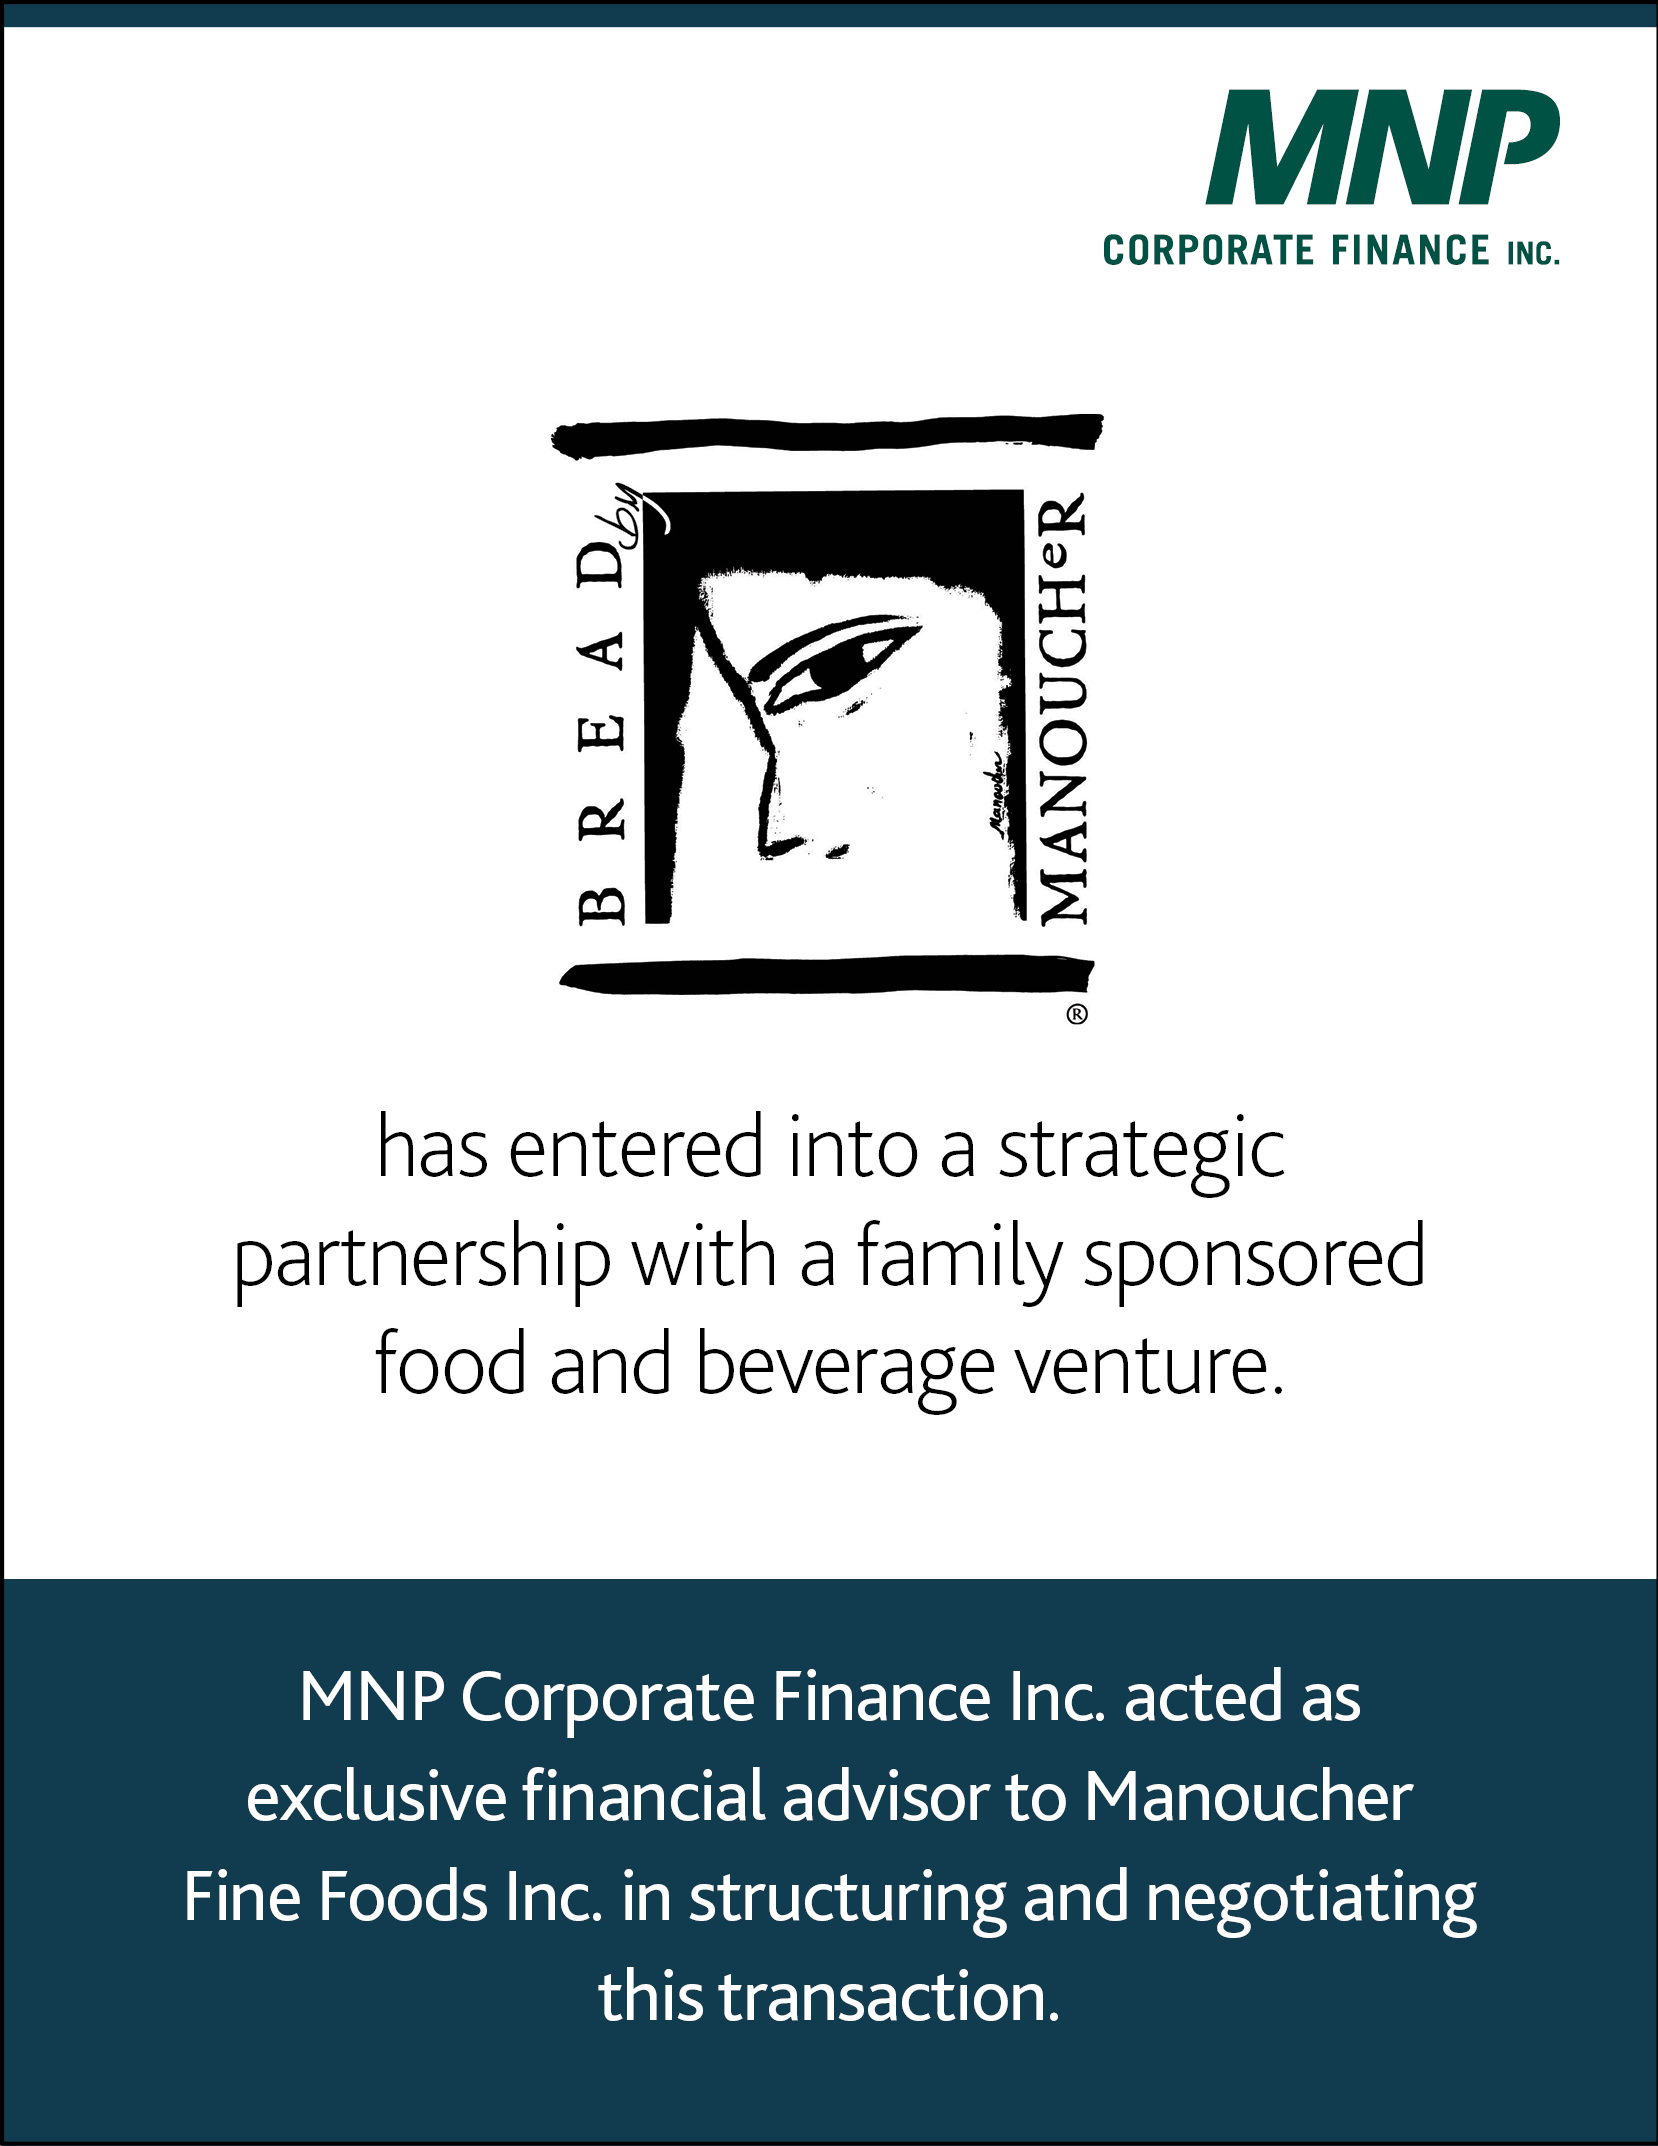 Manoucher Fine Foods Inc. has entered into a strategic partnership with a family sponsored food and beverage venture.